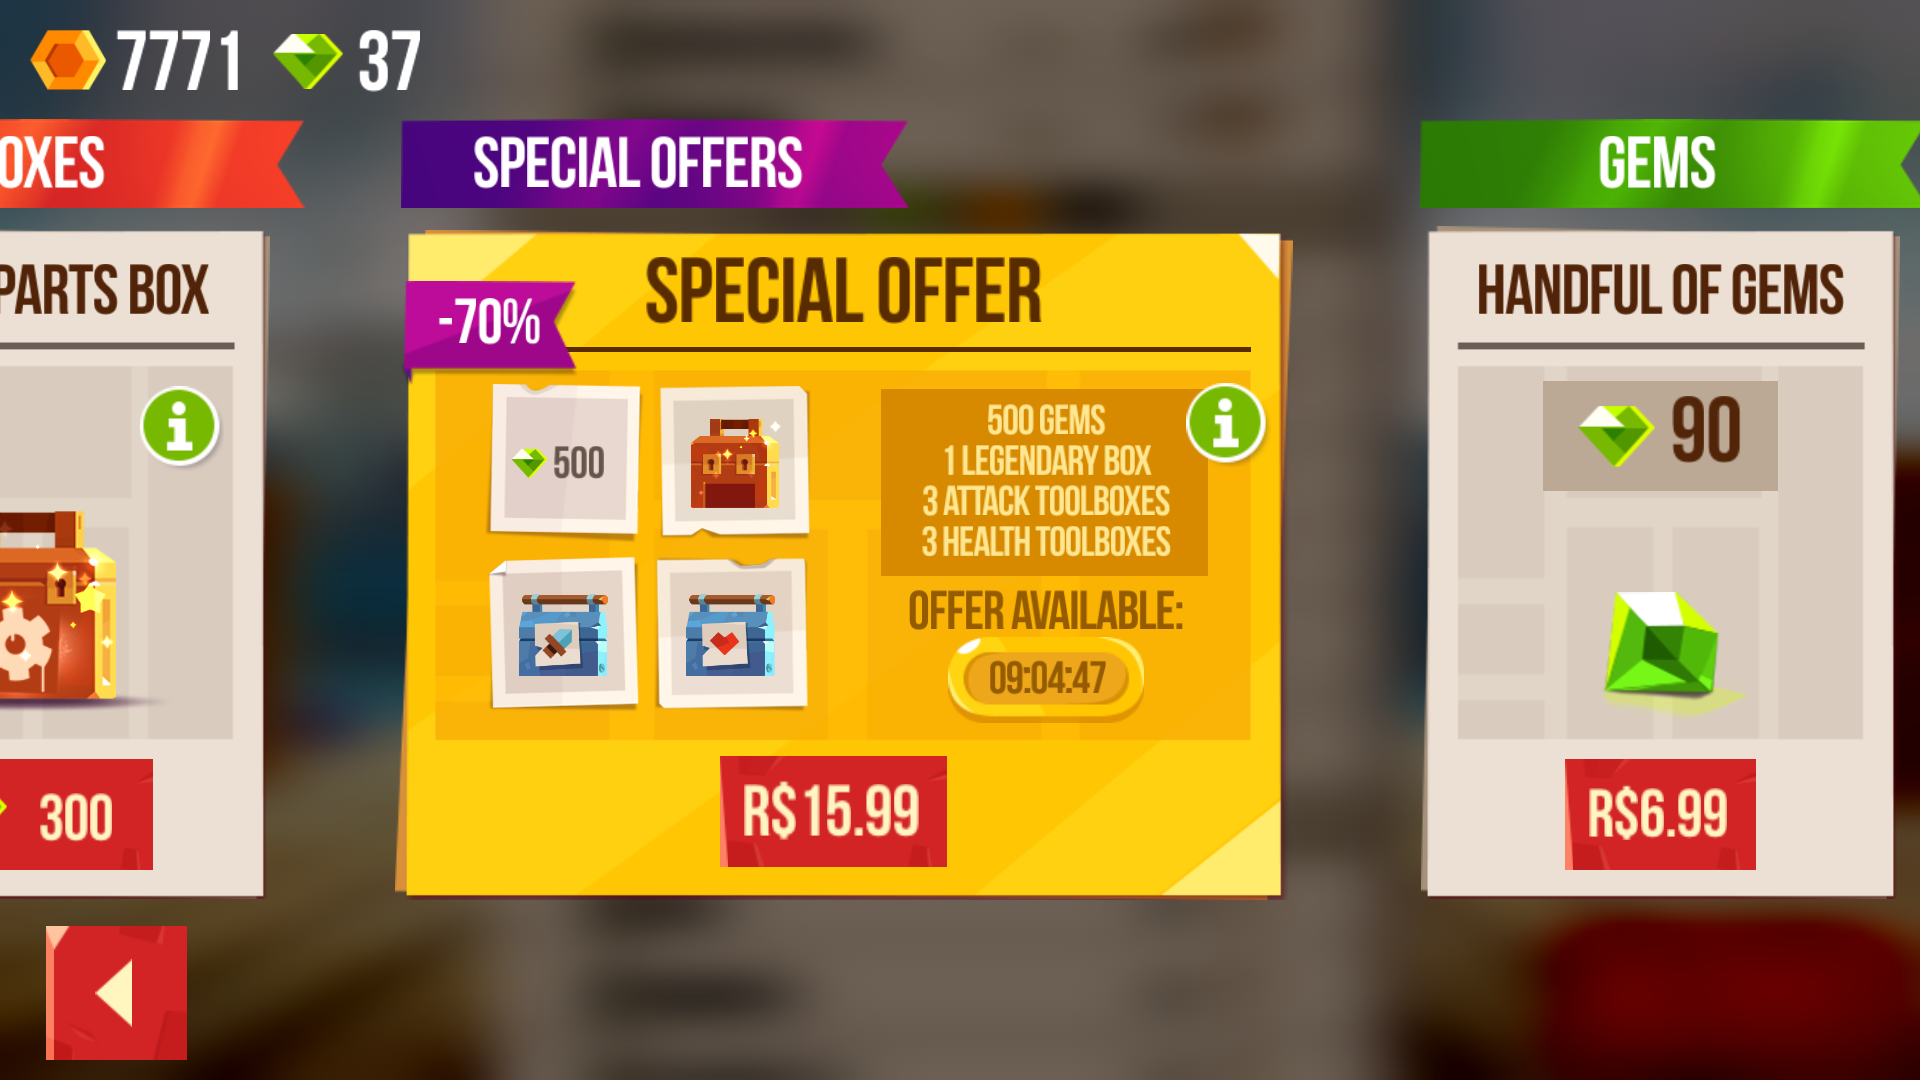 Special Offer in the Store